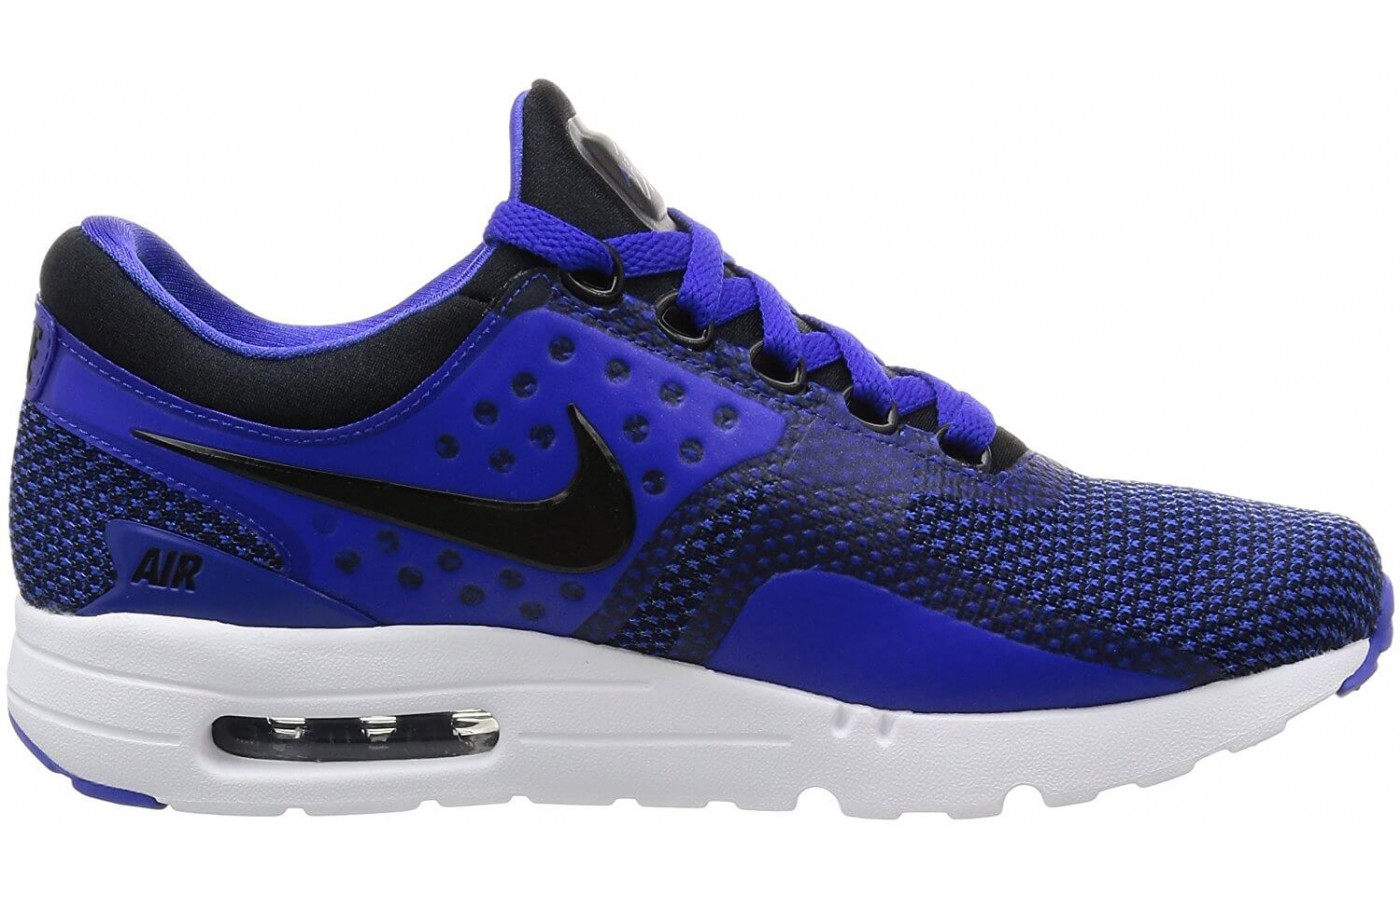 The Nike Air Max Zero Essential is a lightweight cushioned lifestyle shoe